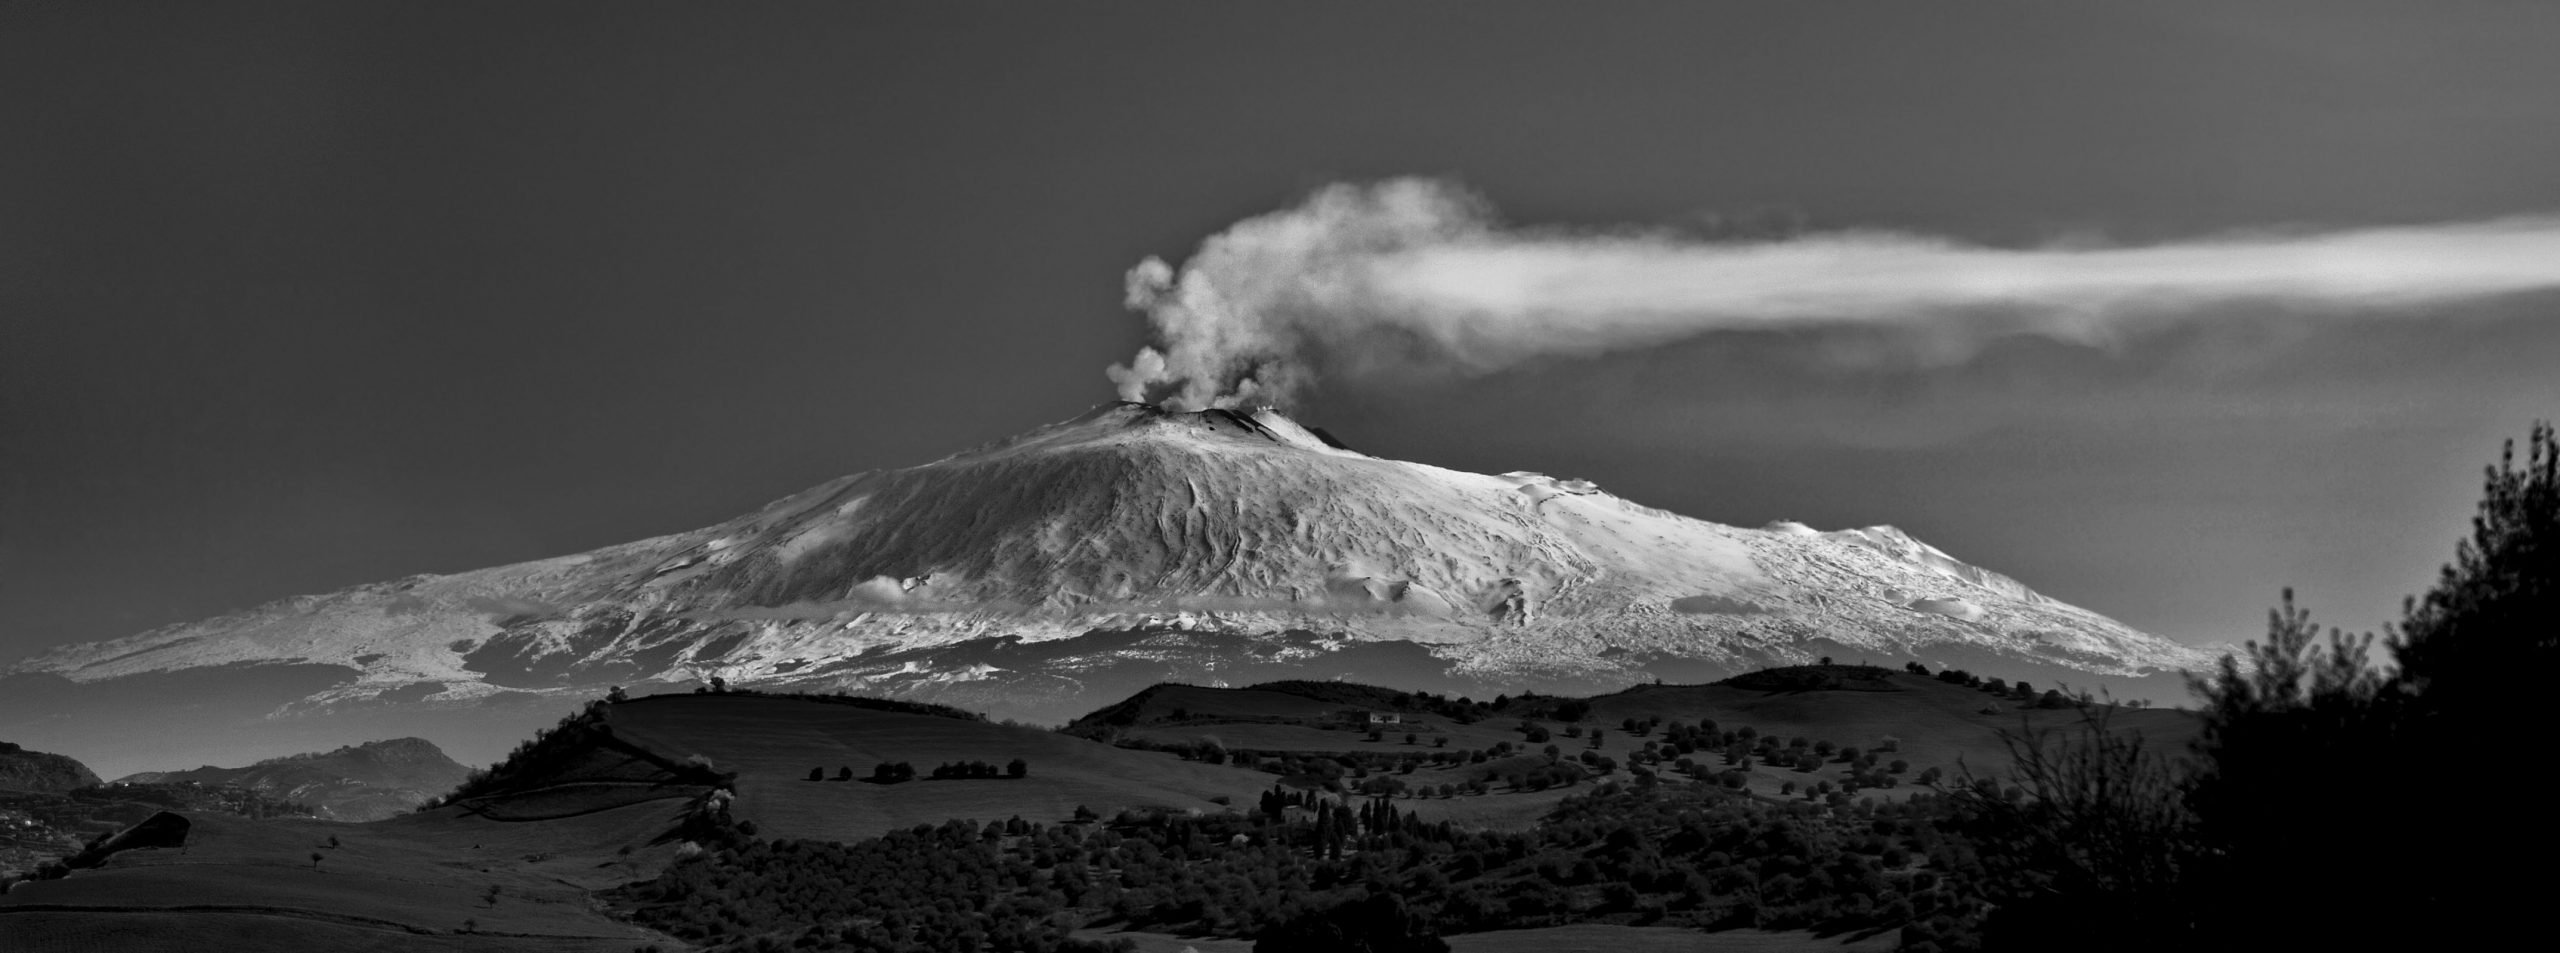 Mount Etna in Sicily photo credit rosdemora Adobe stock